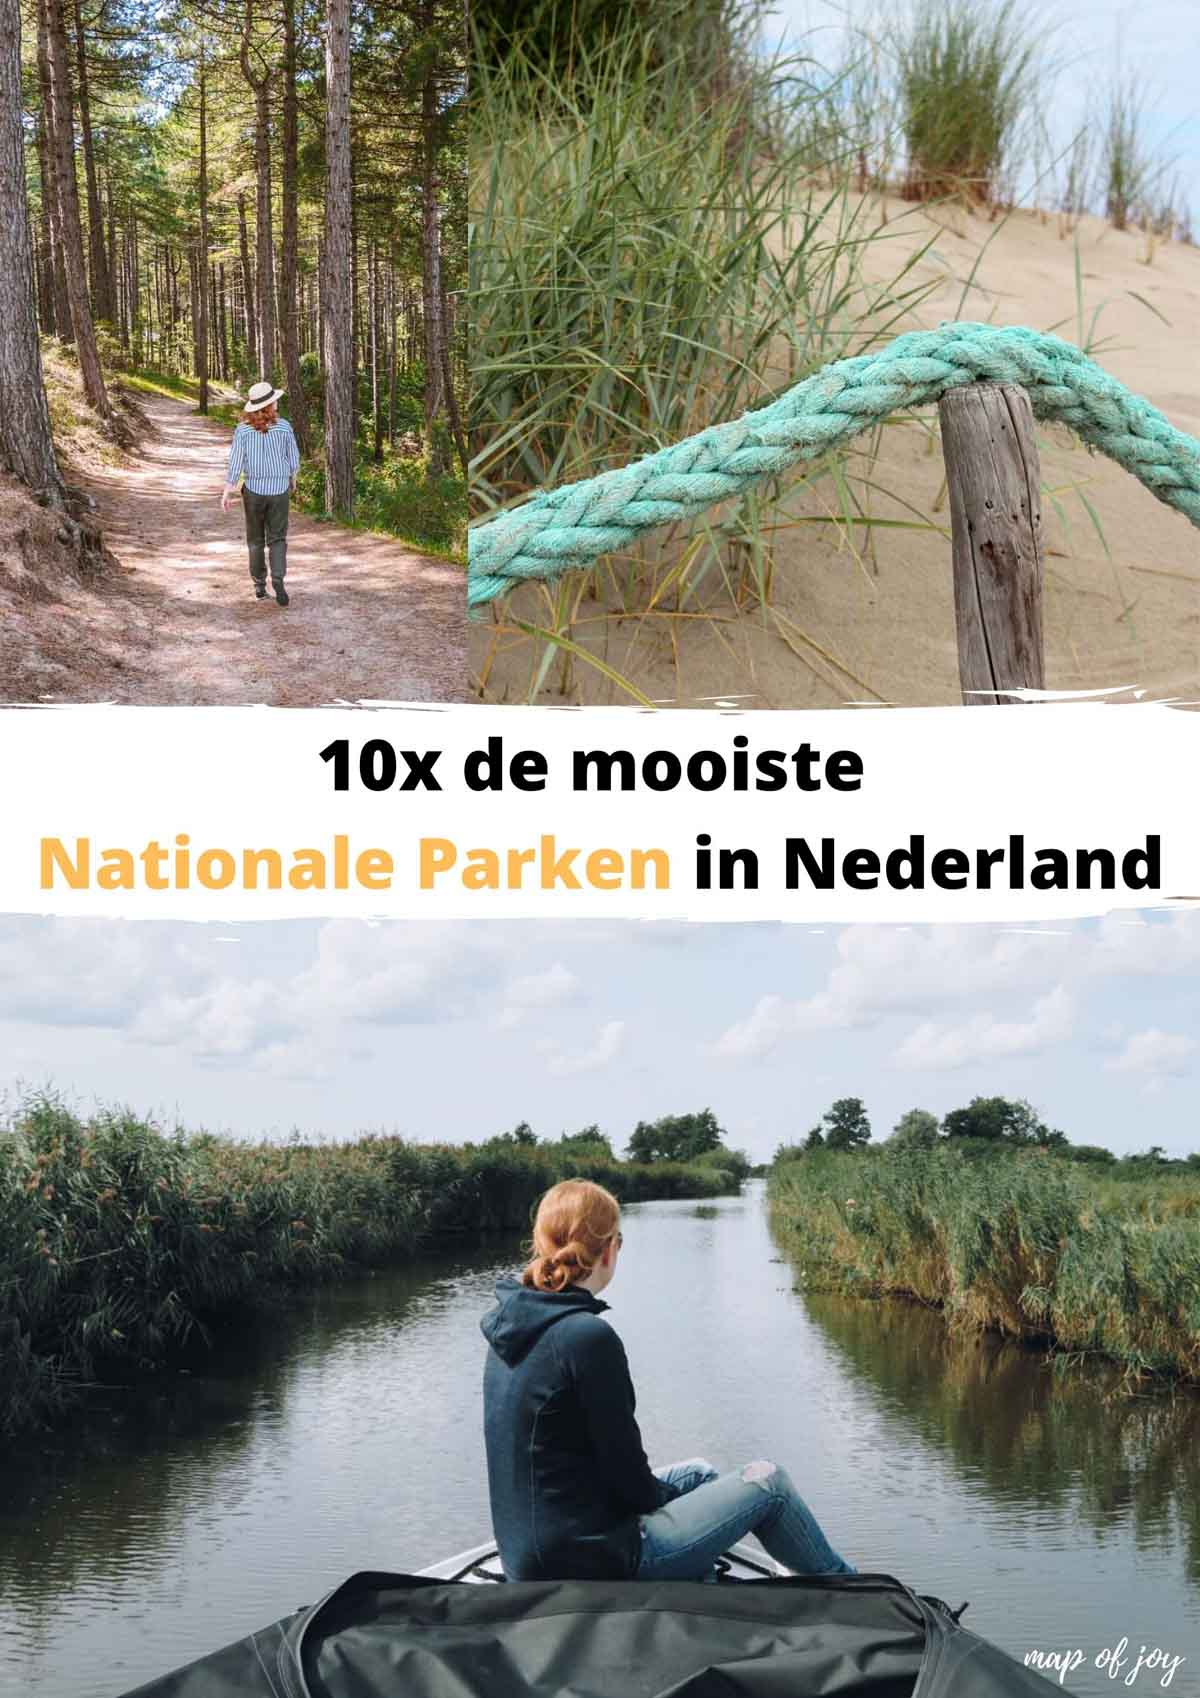 10x de mooiste Nationale Parken in Nederland